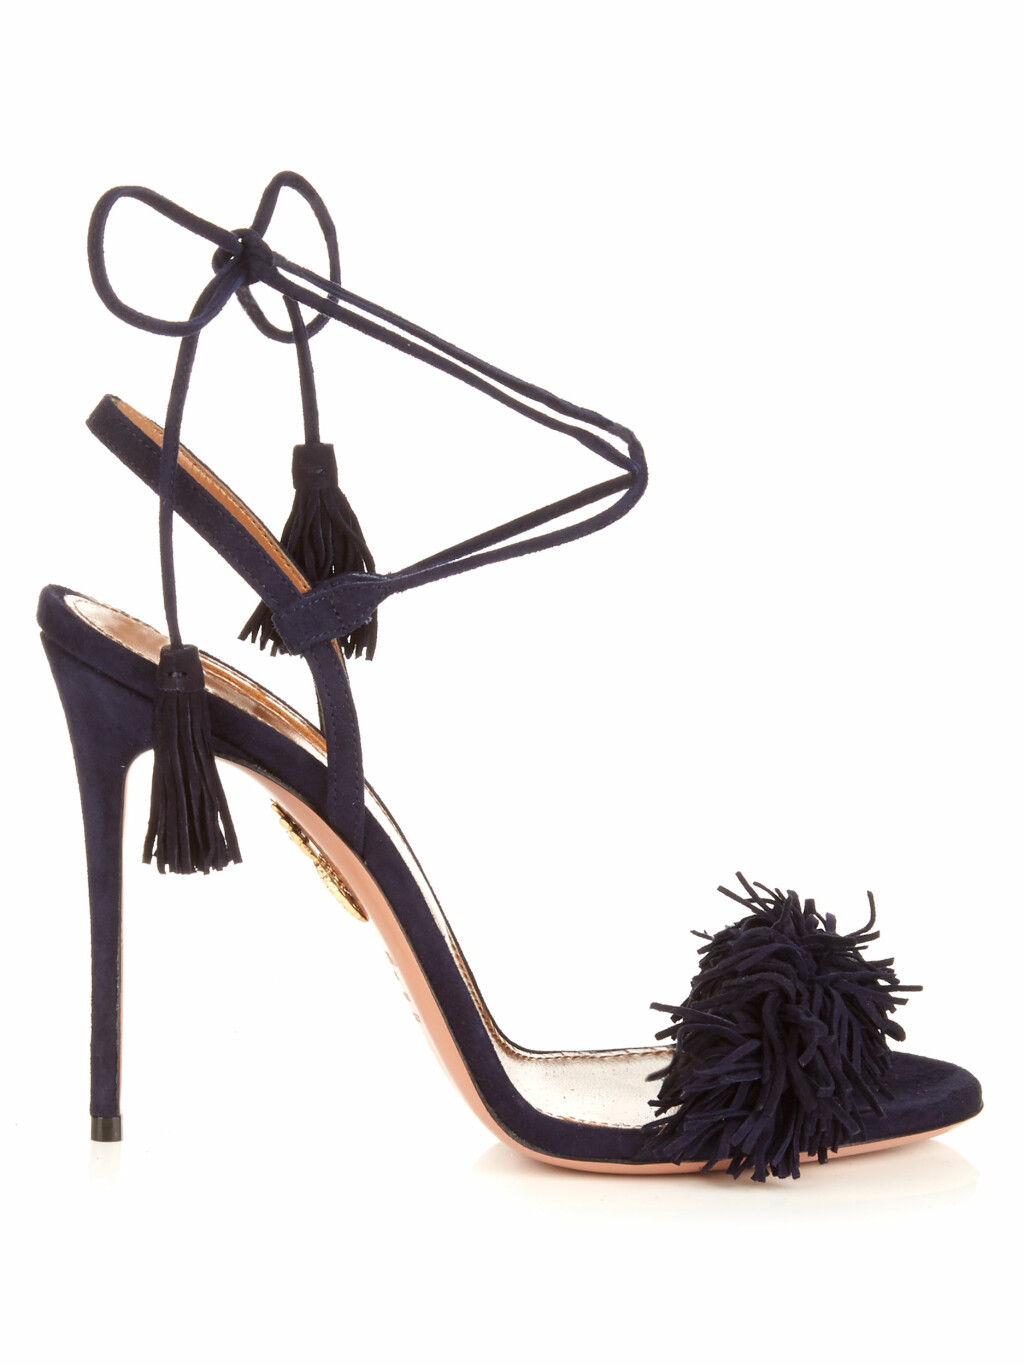 Hæler fra Aquazzura via Matchesfashion.com | kr 2600